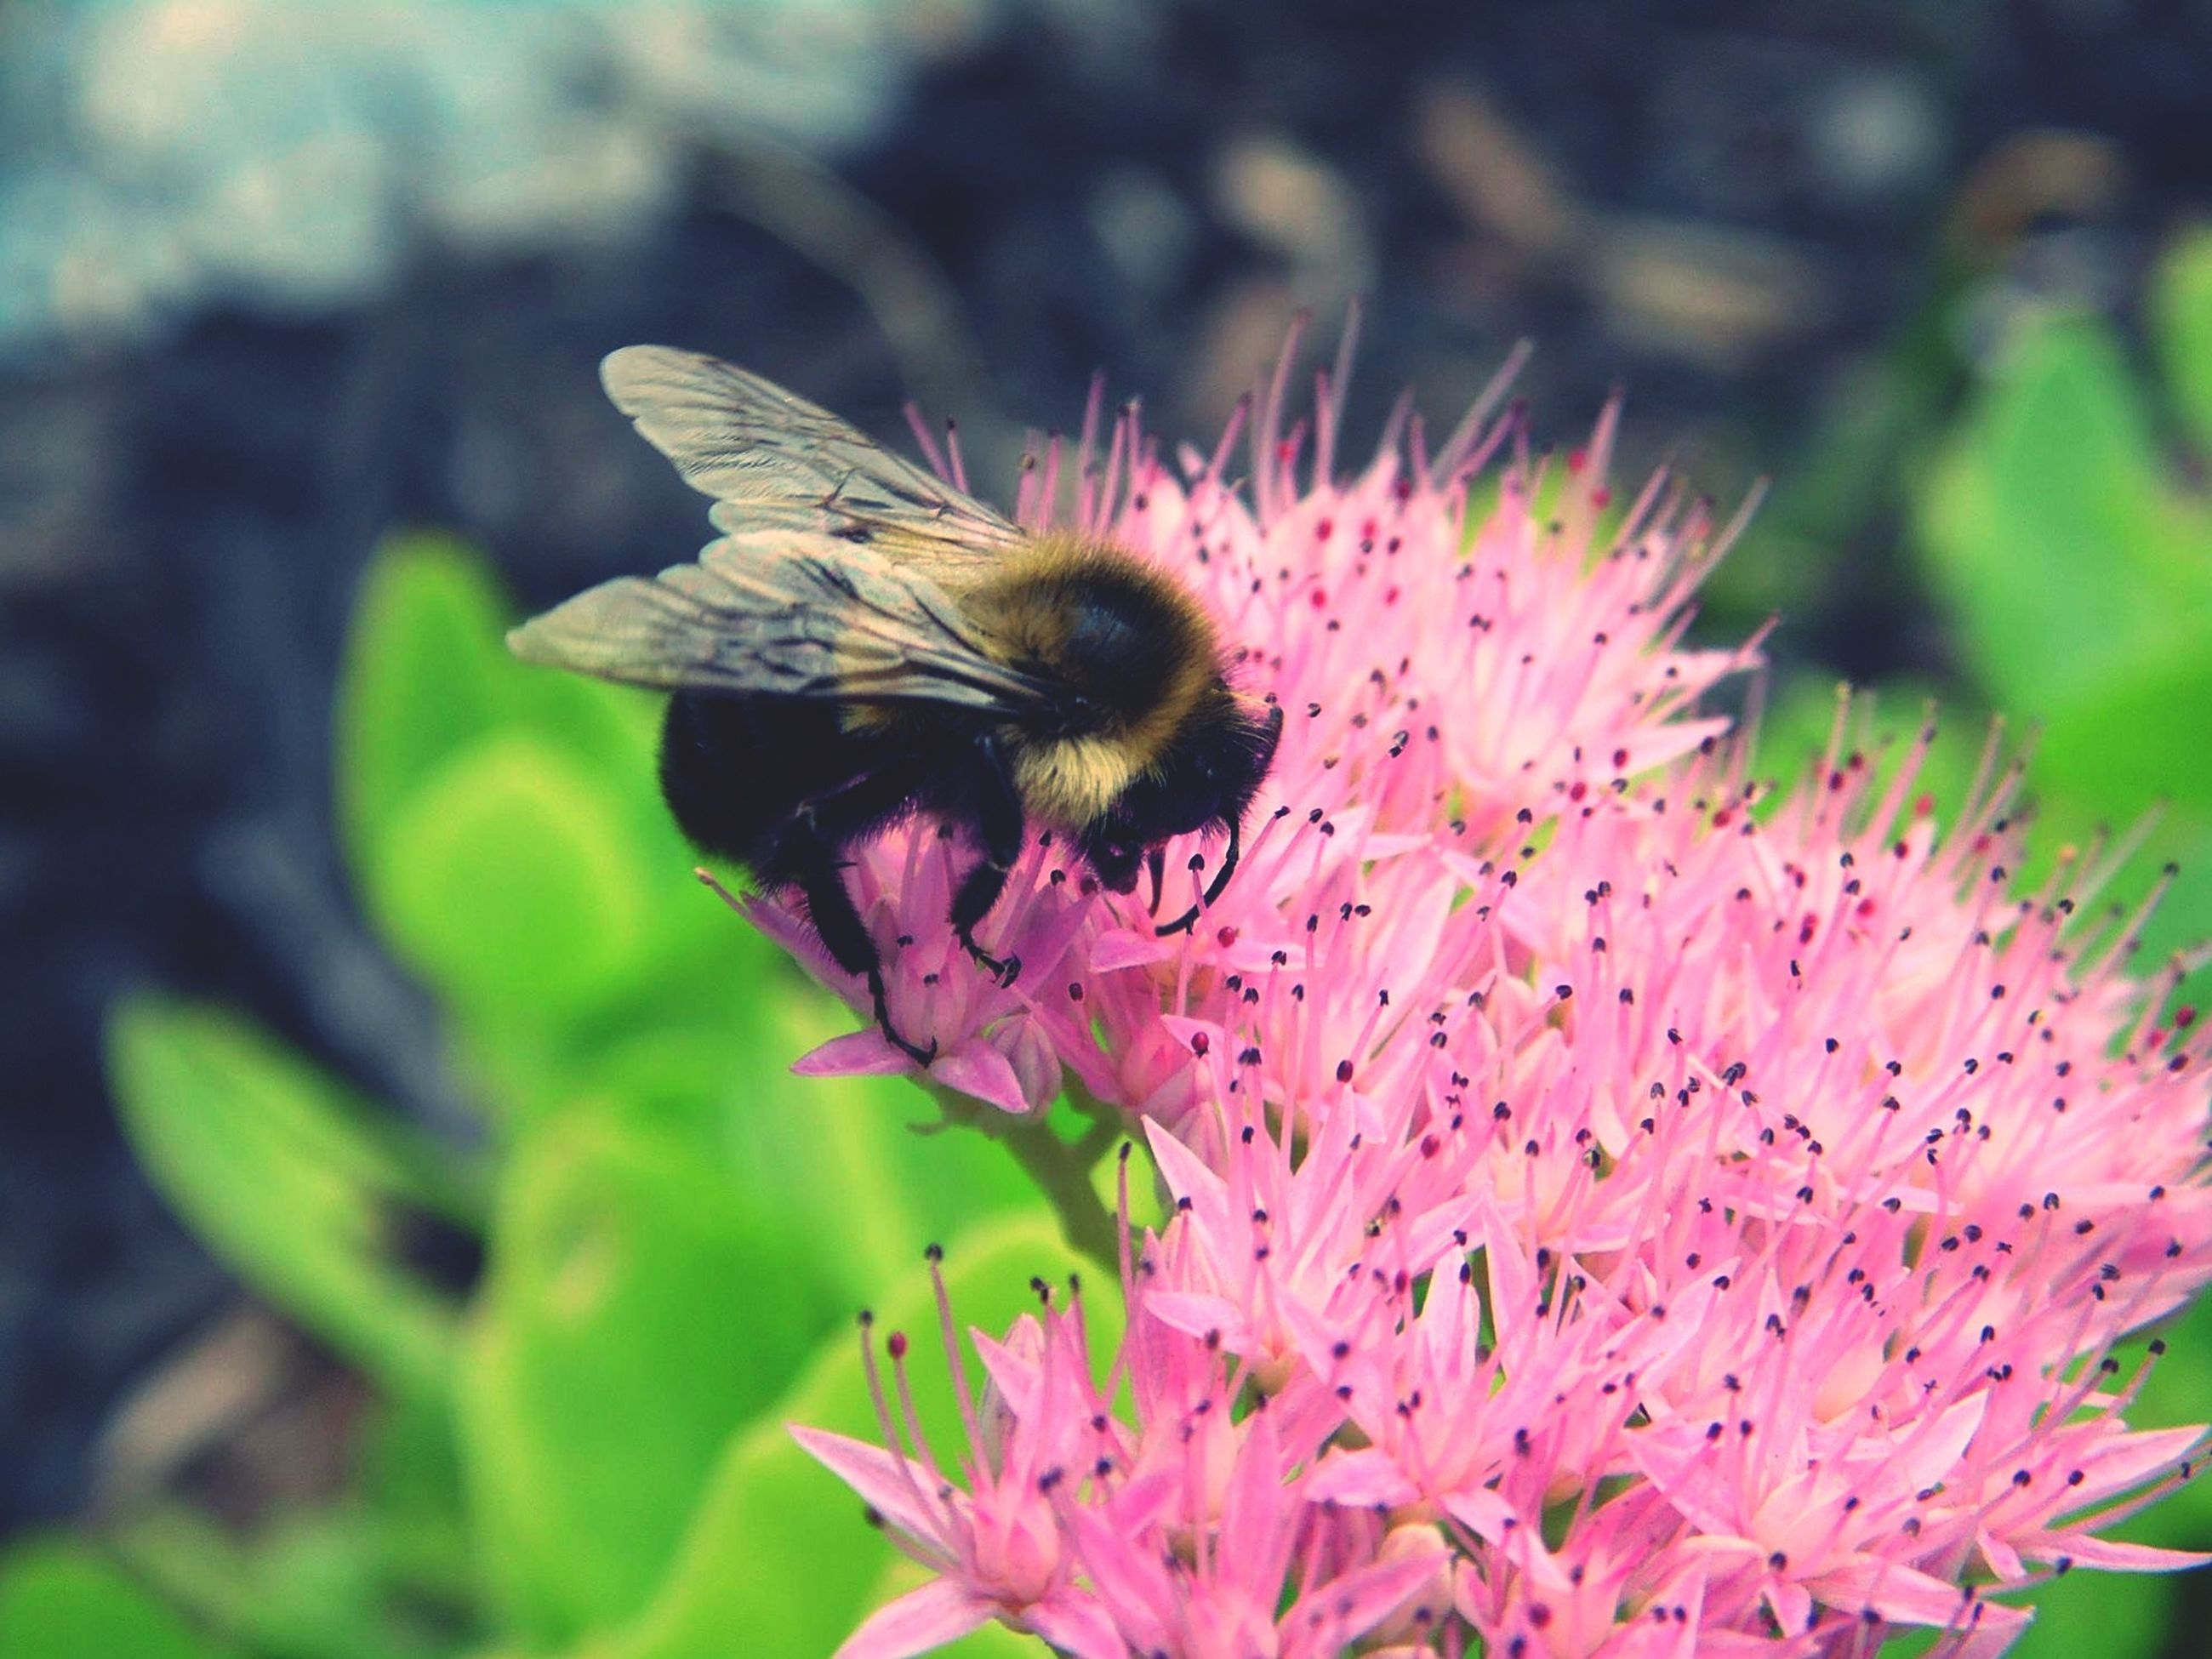 flower, freshness, petal, one animal, fragility, insect, animal themes, flower head, animals in the wild, pink color, growth, wildlife, beauty in nature, pollination, focus on foreground, close-up, nature, bee, blooming, plant